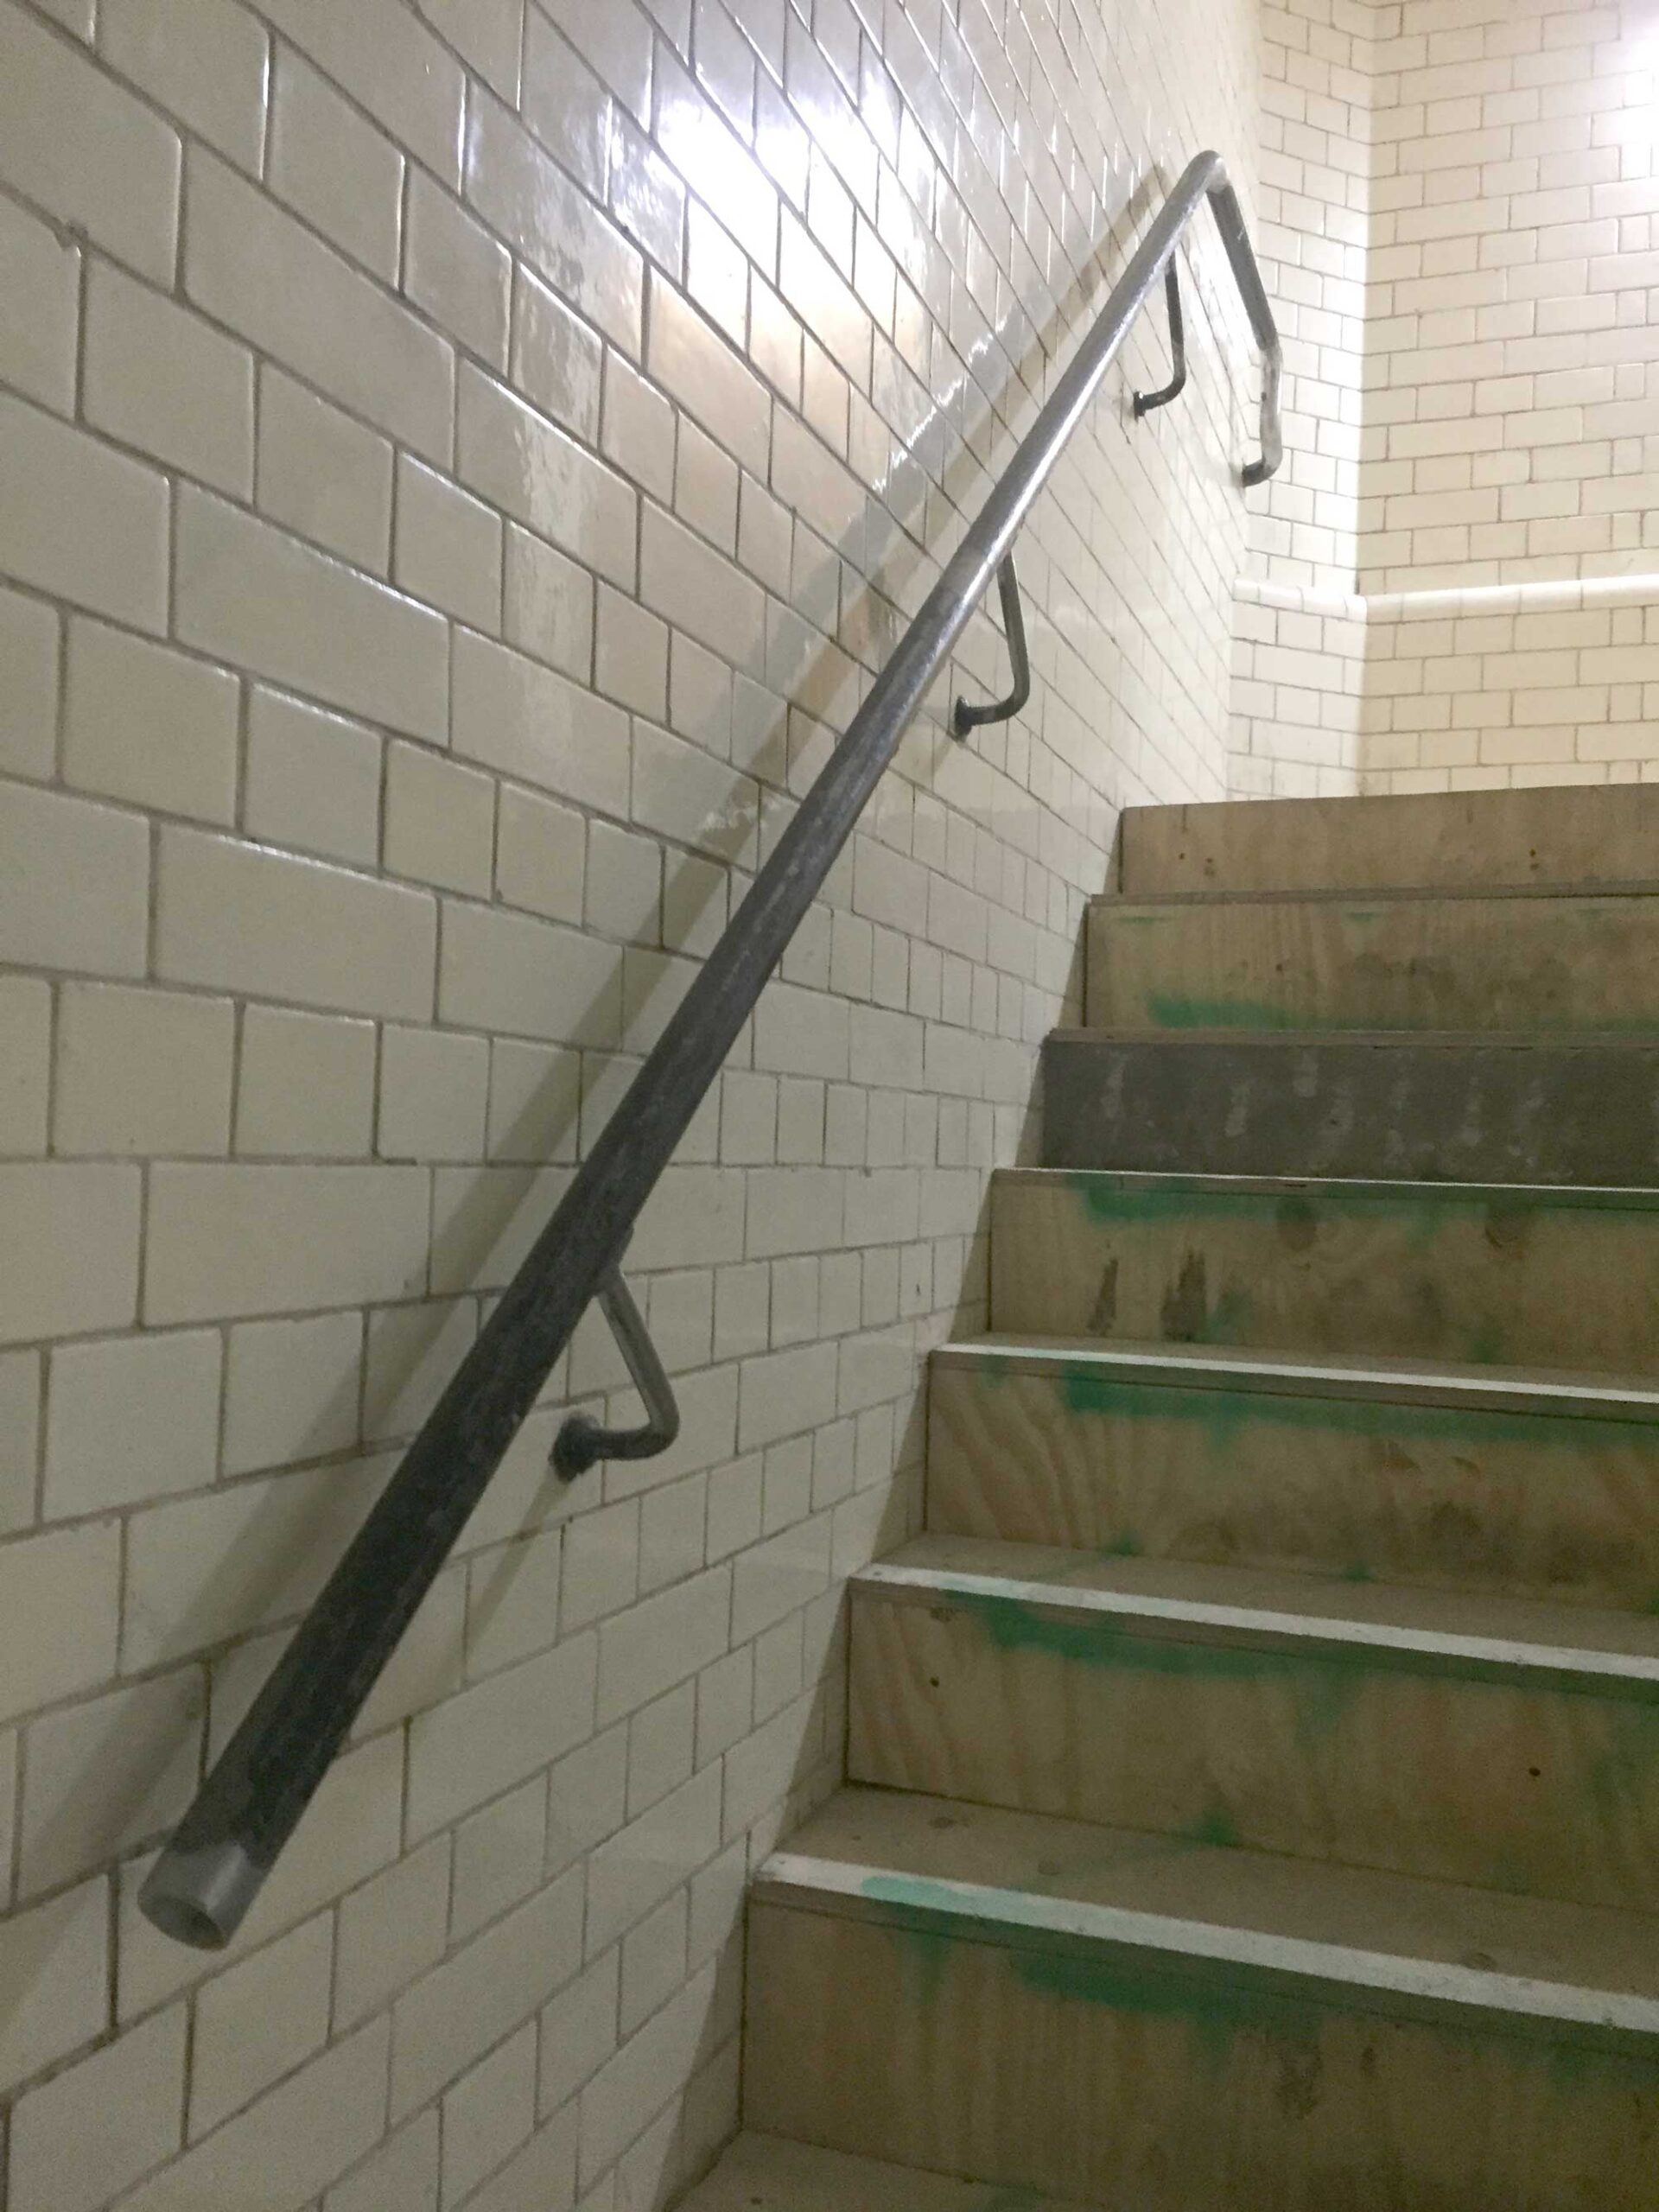 westminster-fire-station-openstudio-architects-existing-staircase